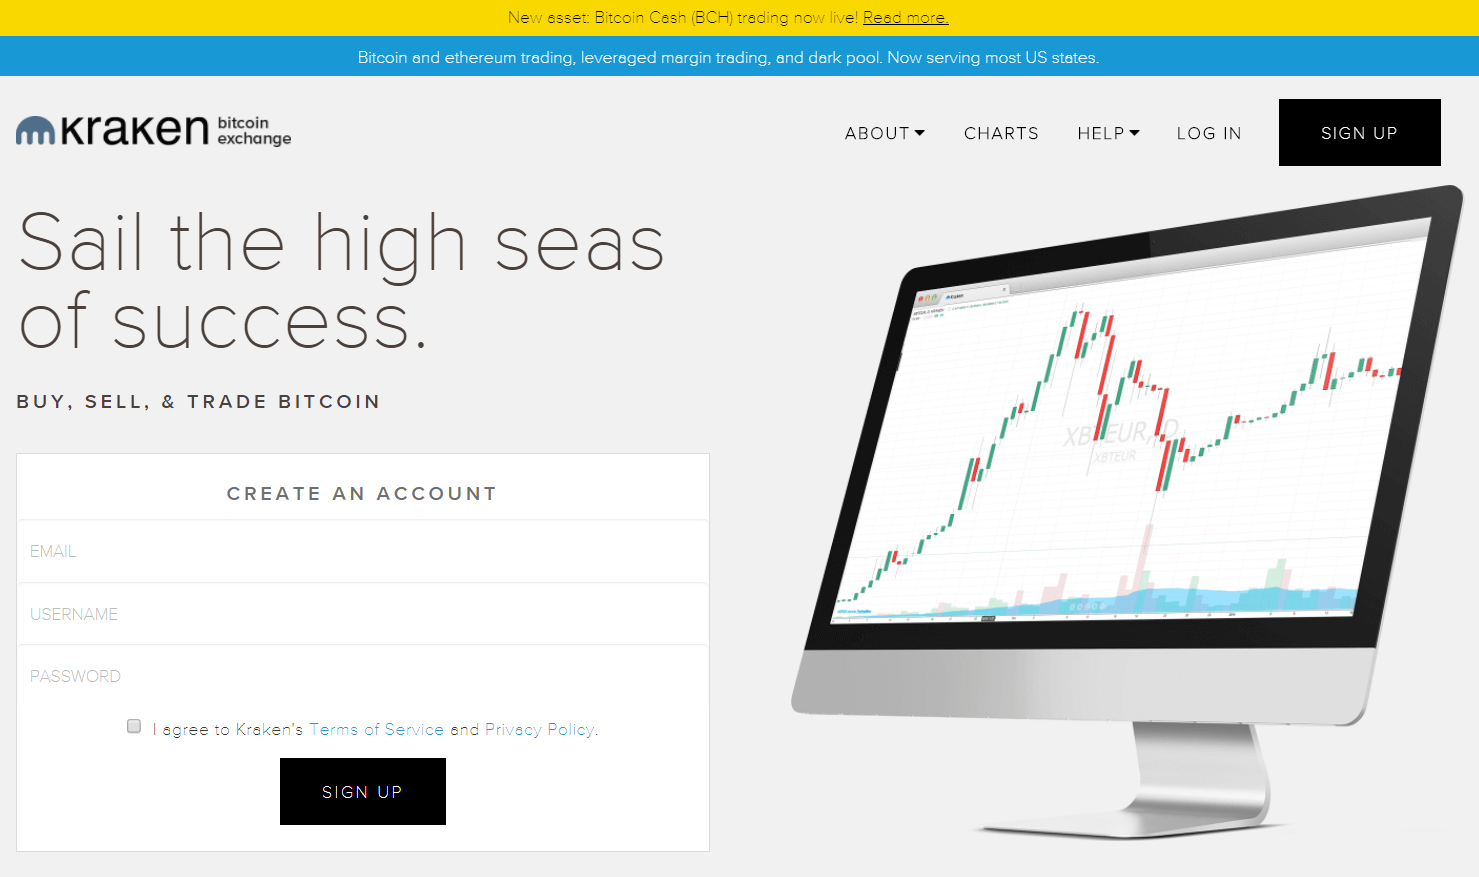 Get bitcoins with SEPA via Kraken